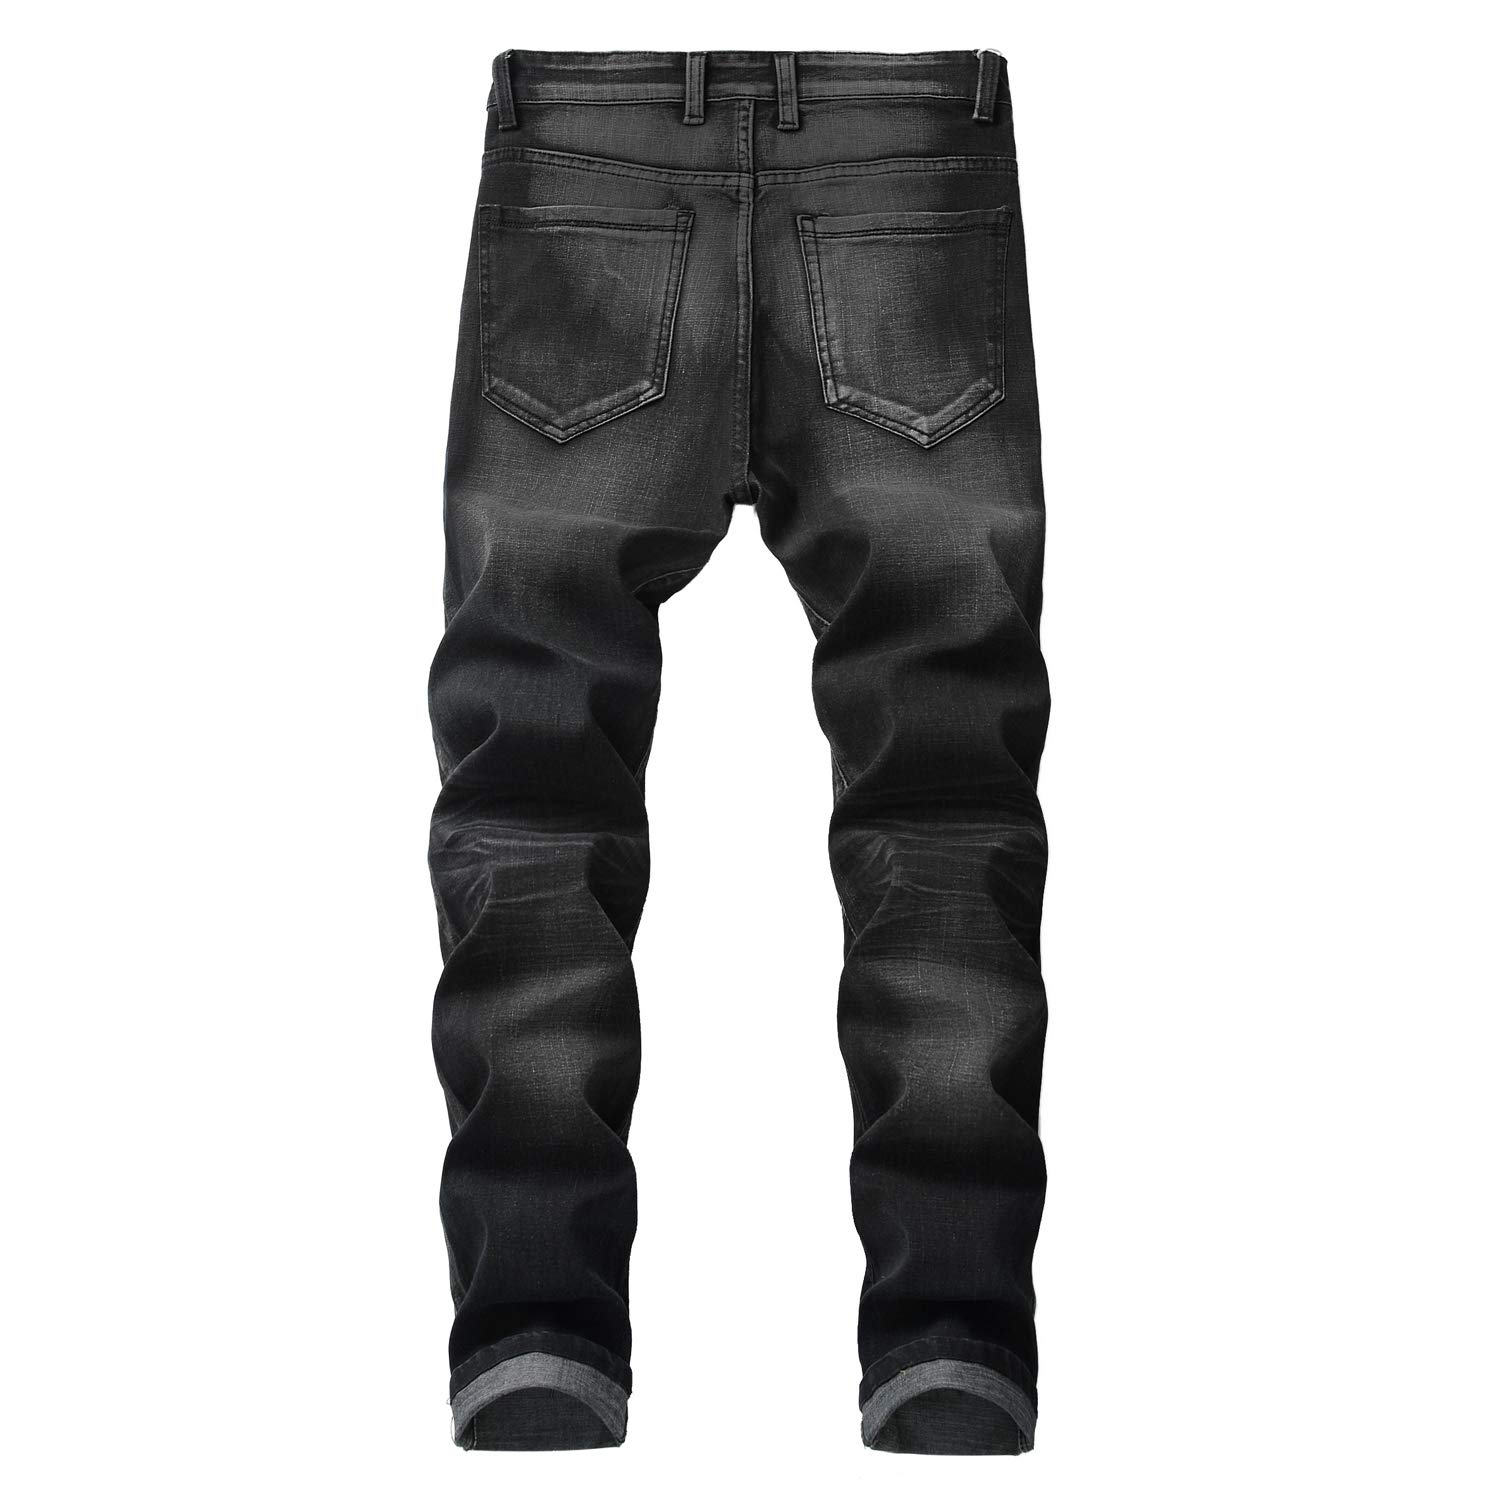 Previn Mens Slim Fit Jeans Patch Ripped Distressed Jeans Washed Biker Moto Demin Pants